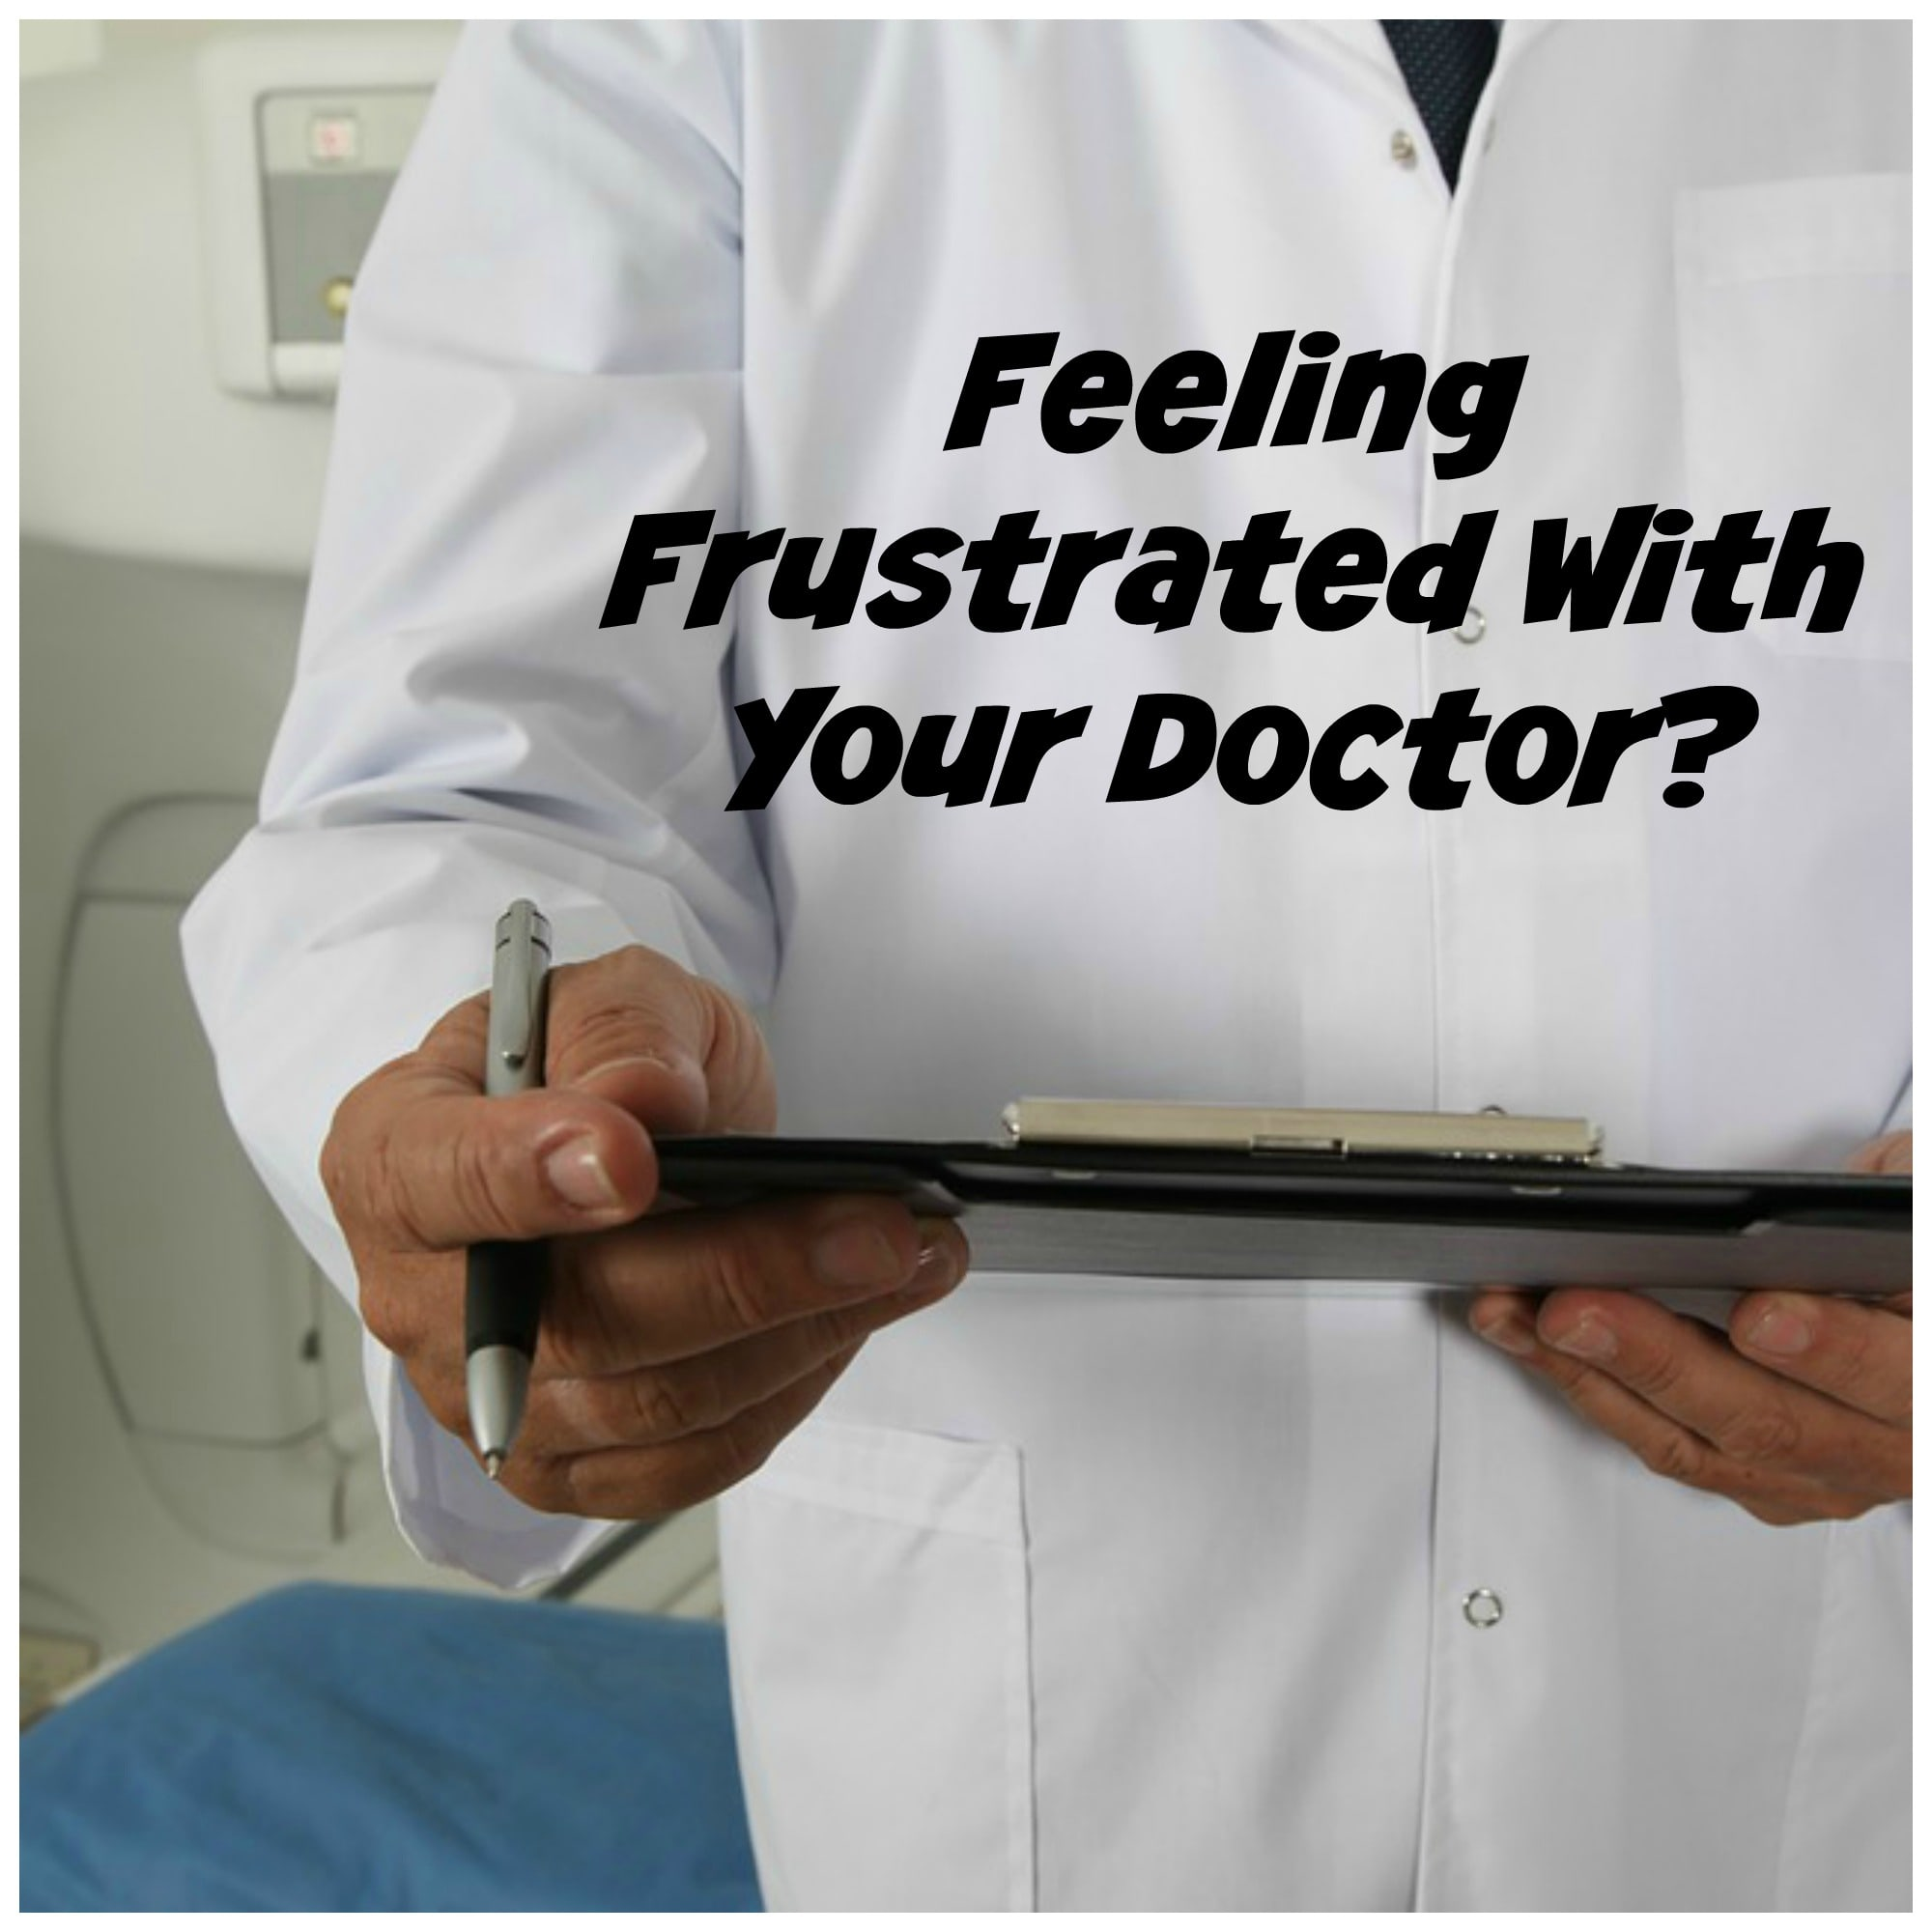 fibromyalgia - I'm frustrated with my doctor